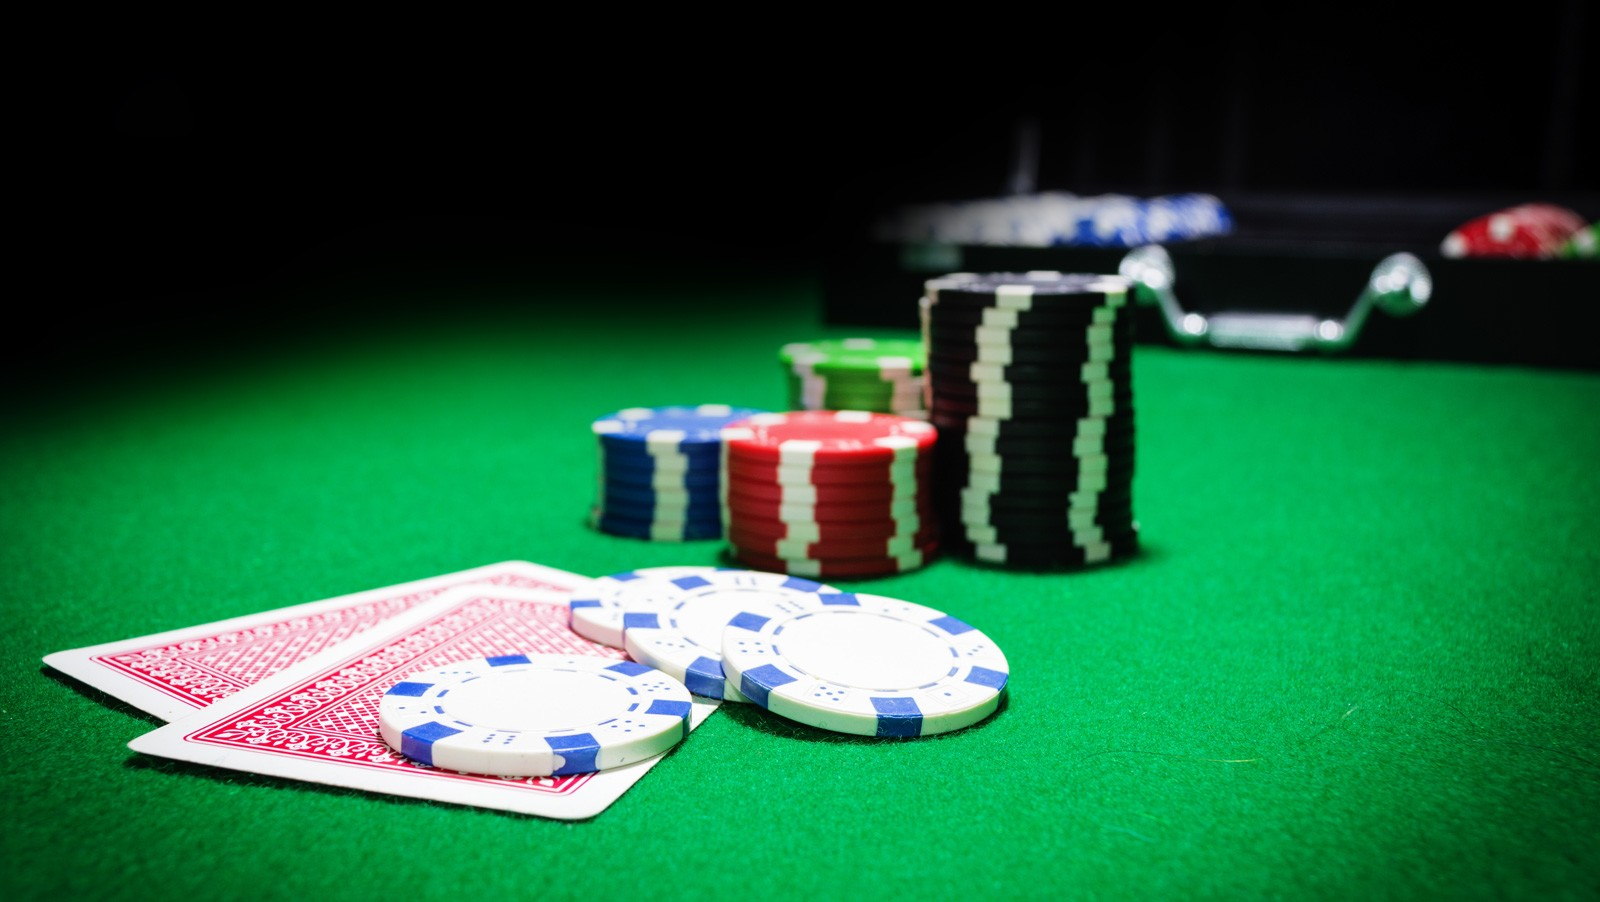 3 Barrels: Wins for Bohn and Weiss; Sochi, King's and DTD loom large